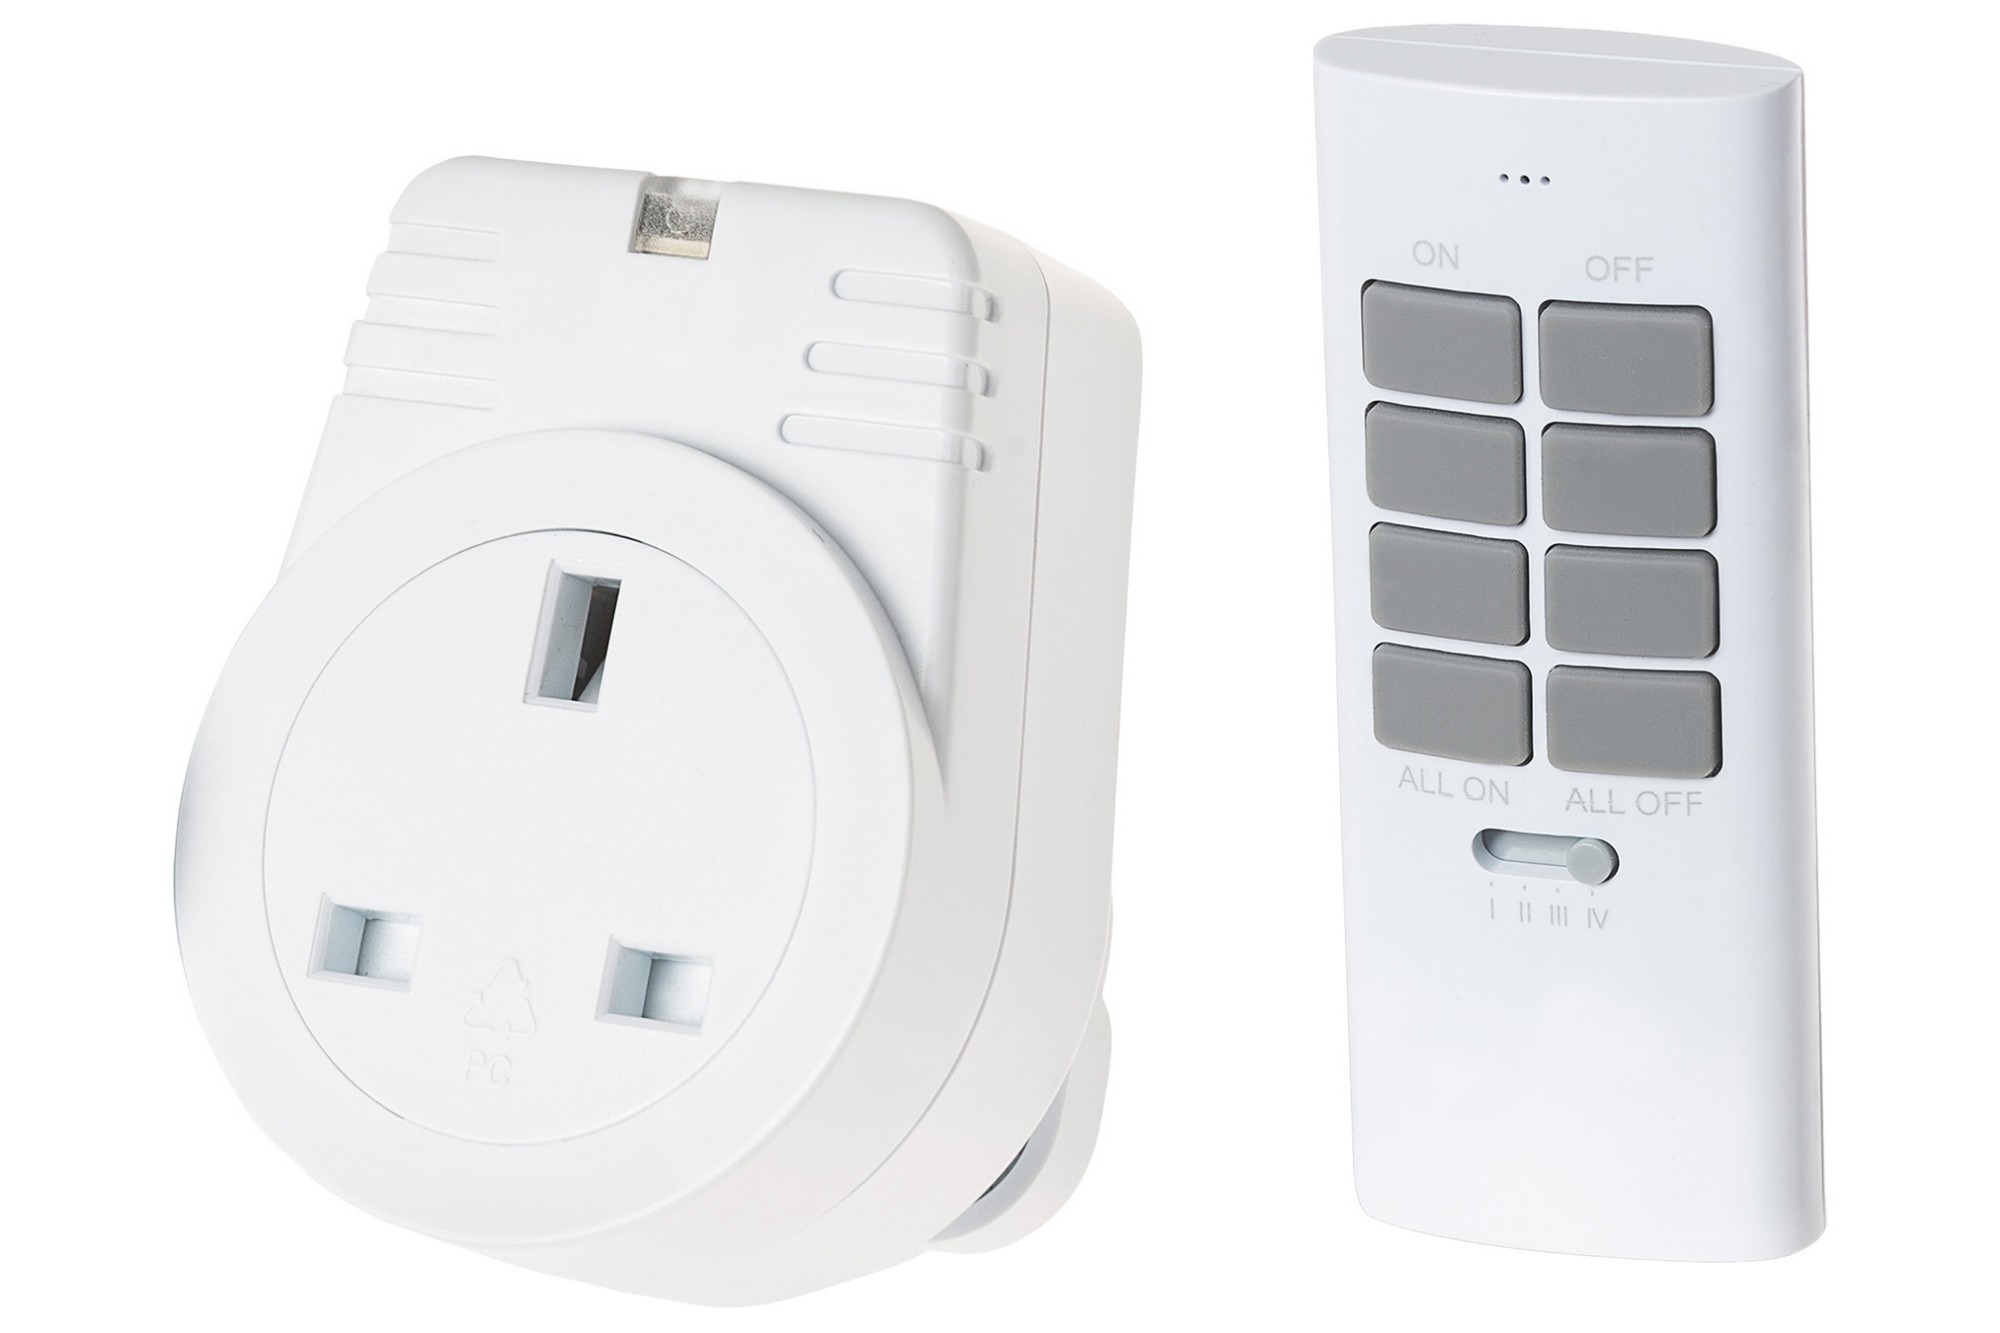 MAPLIN ORB RF Remote Controlled Mains Plug Socket with 1 Remote Version S2 - White